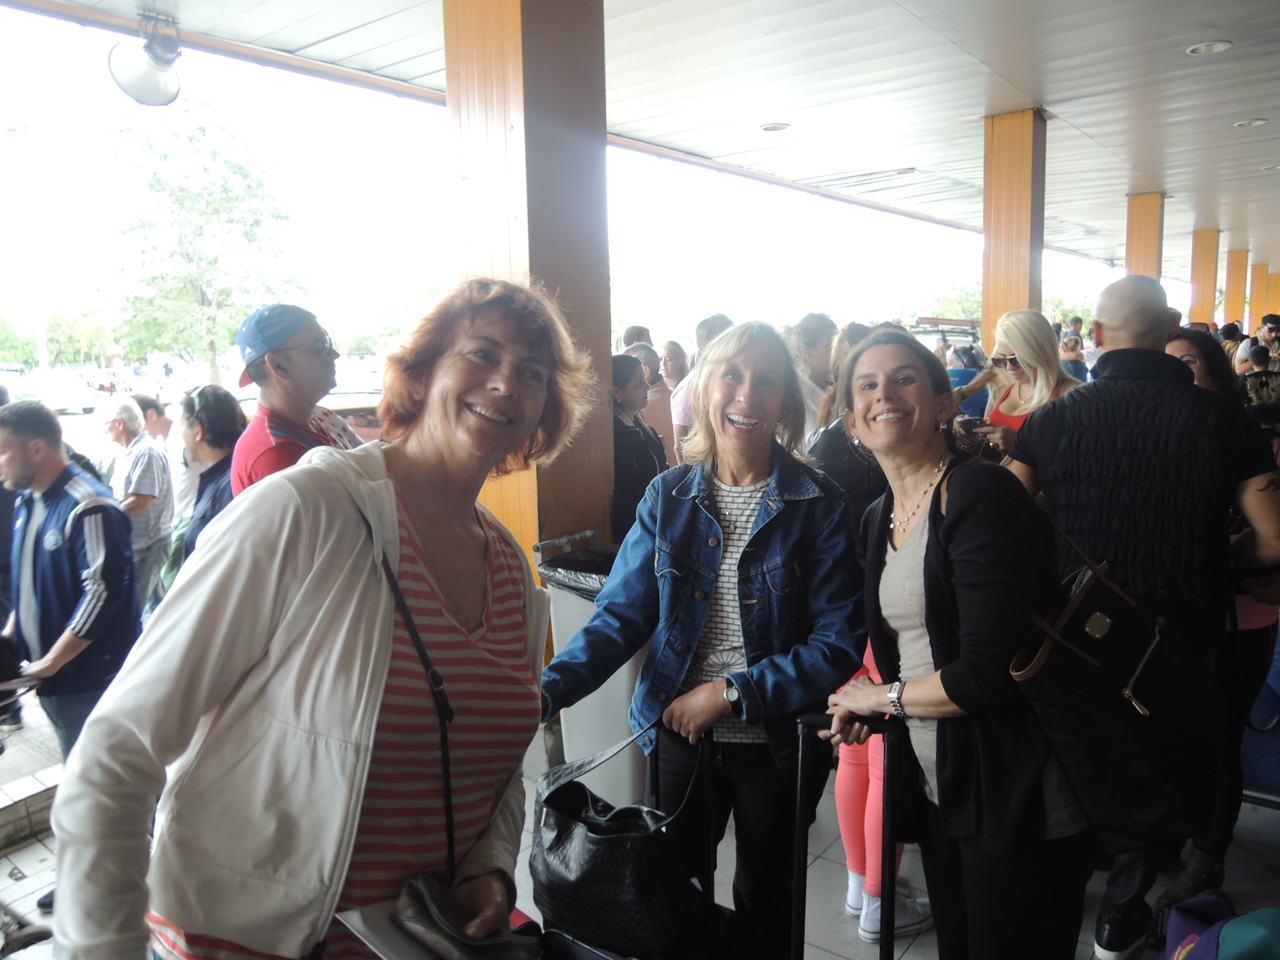 Kathleen, Patty, and Elaine in the mob scene outside the airport terminal.